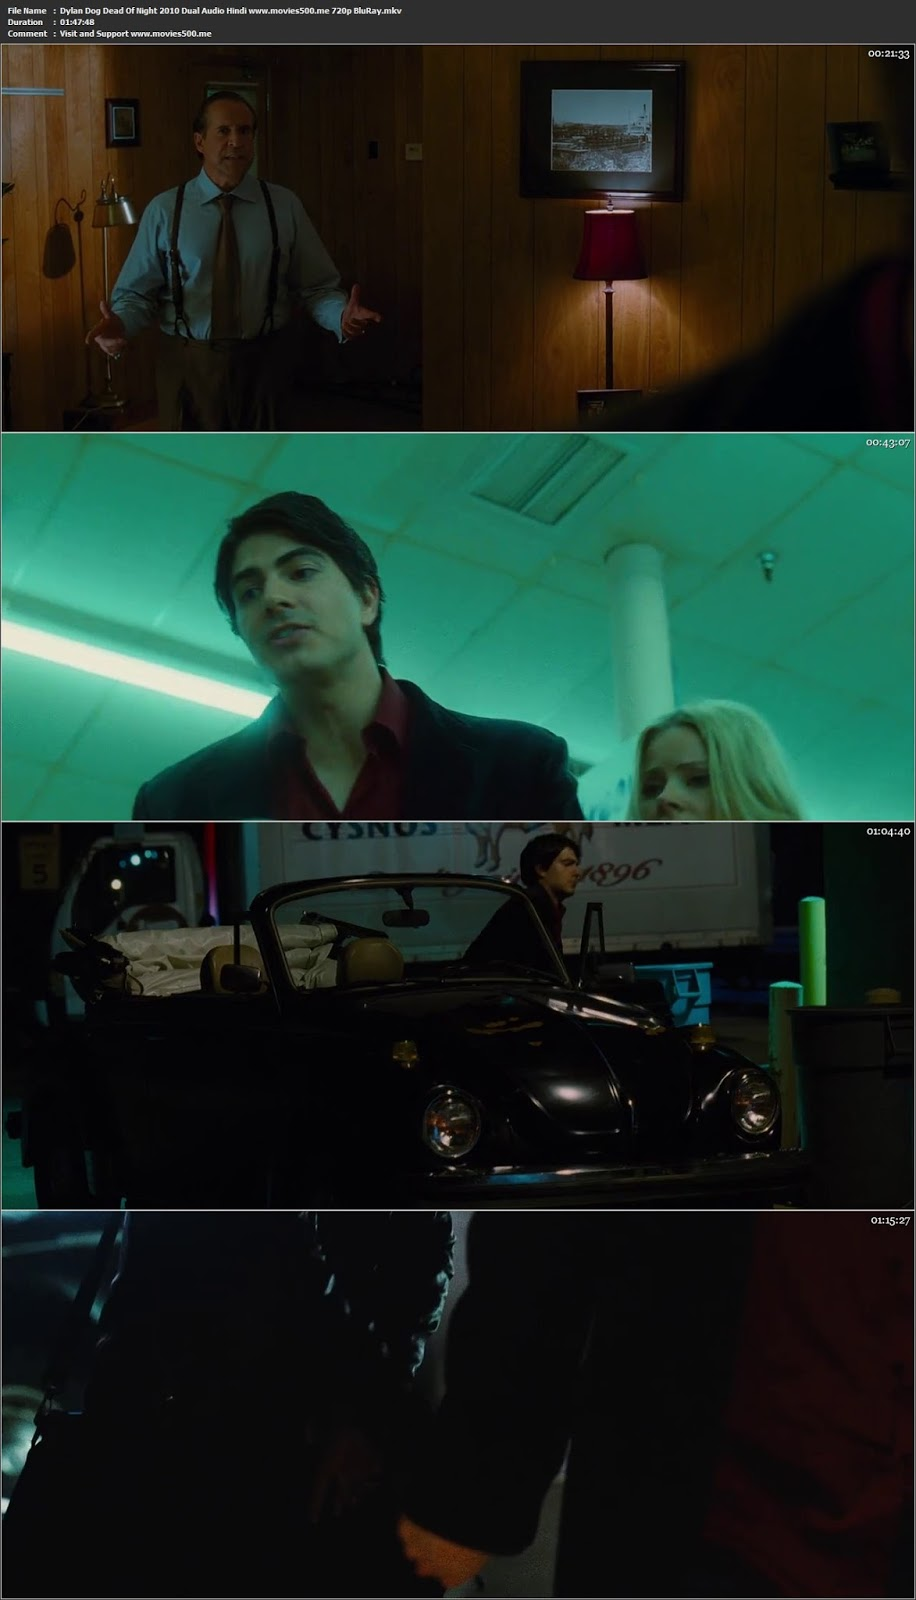 Dylan Dog Dead Of Night 2010 Dual Audio Hindi Eng BluRay 720p at movies500.site